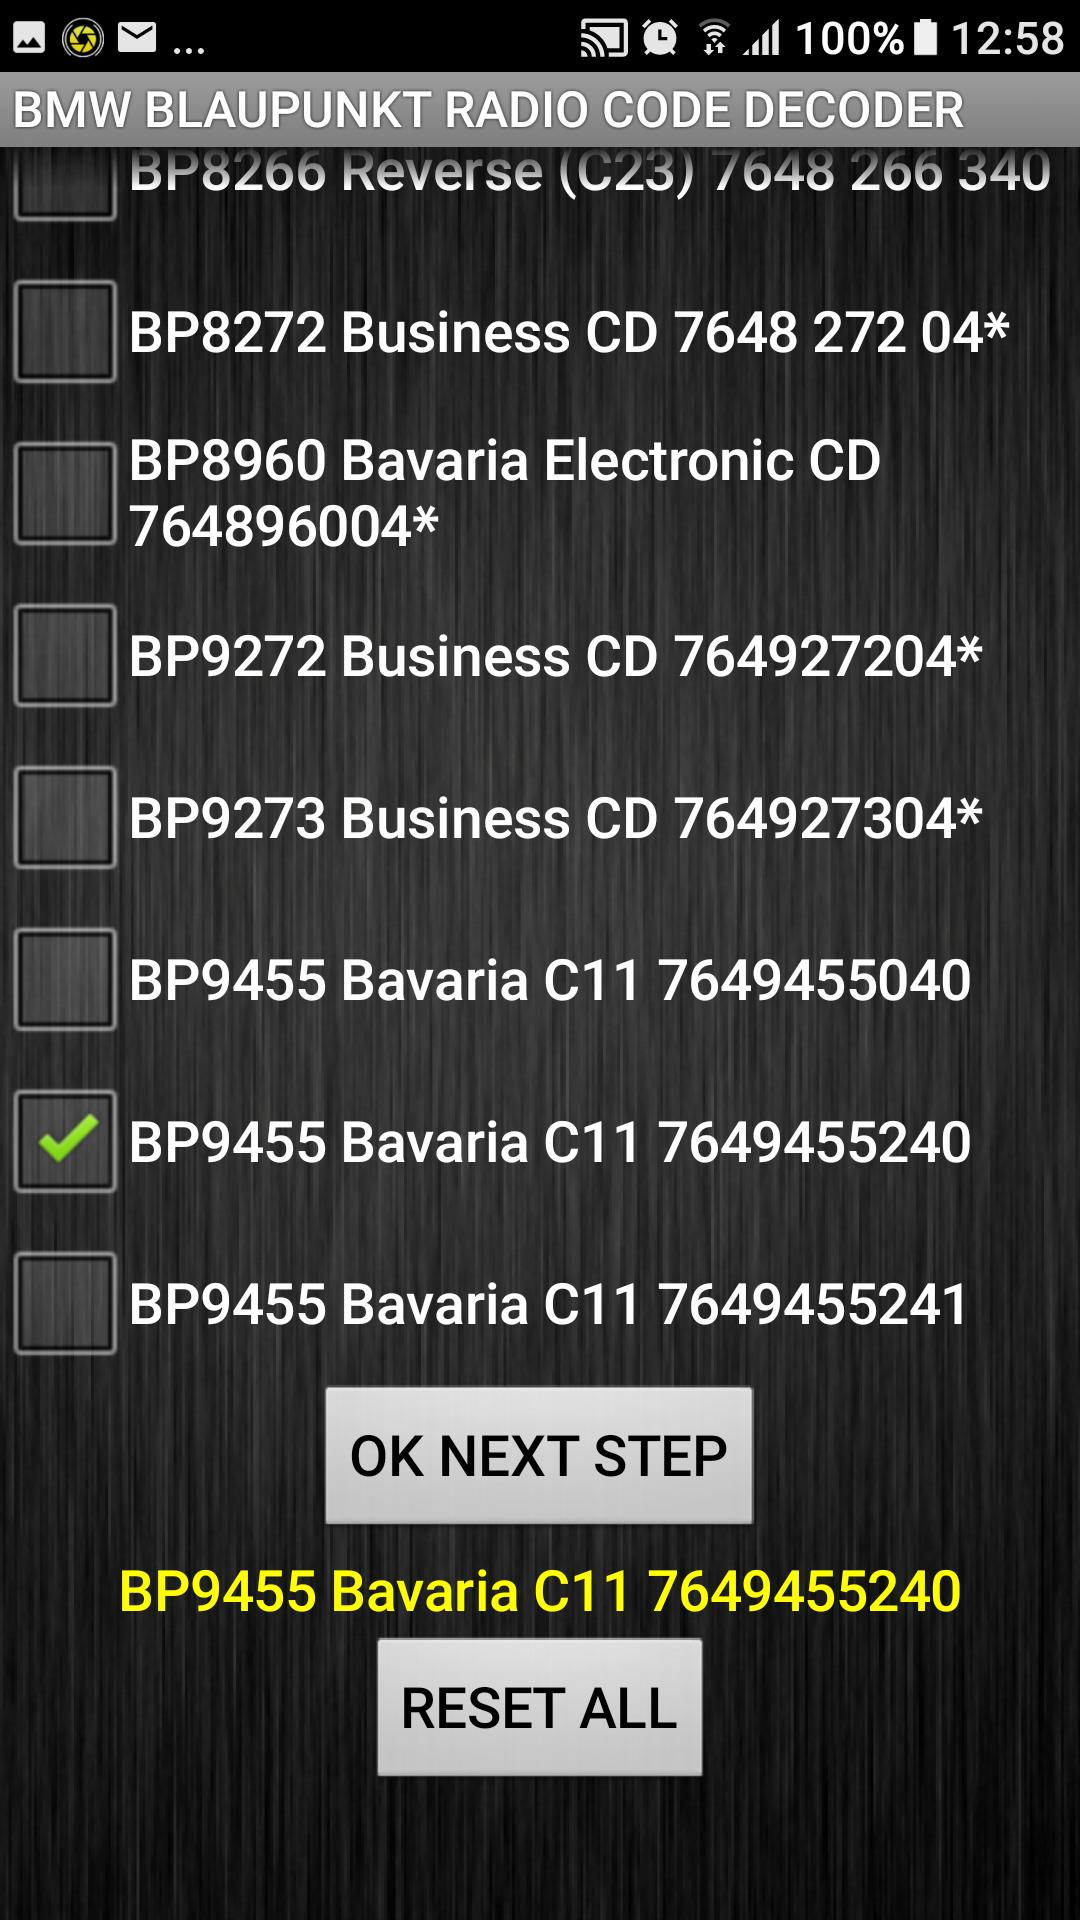 BMW Blaupunkt Radio Code Calculator for Android - APK Download